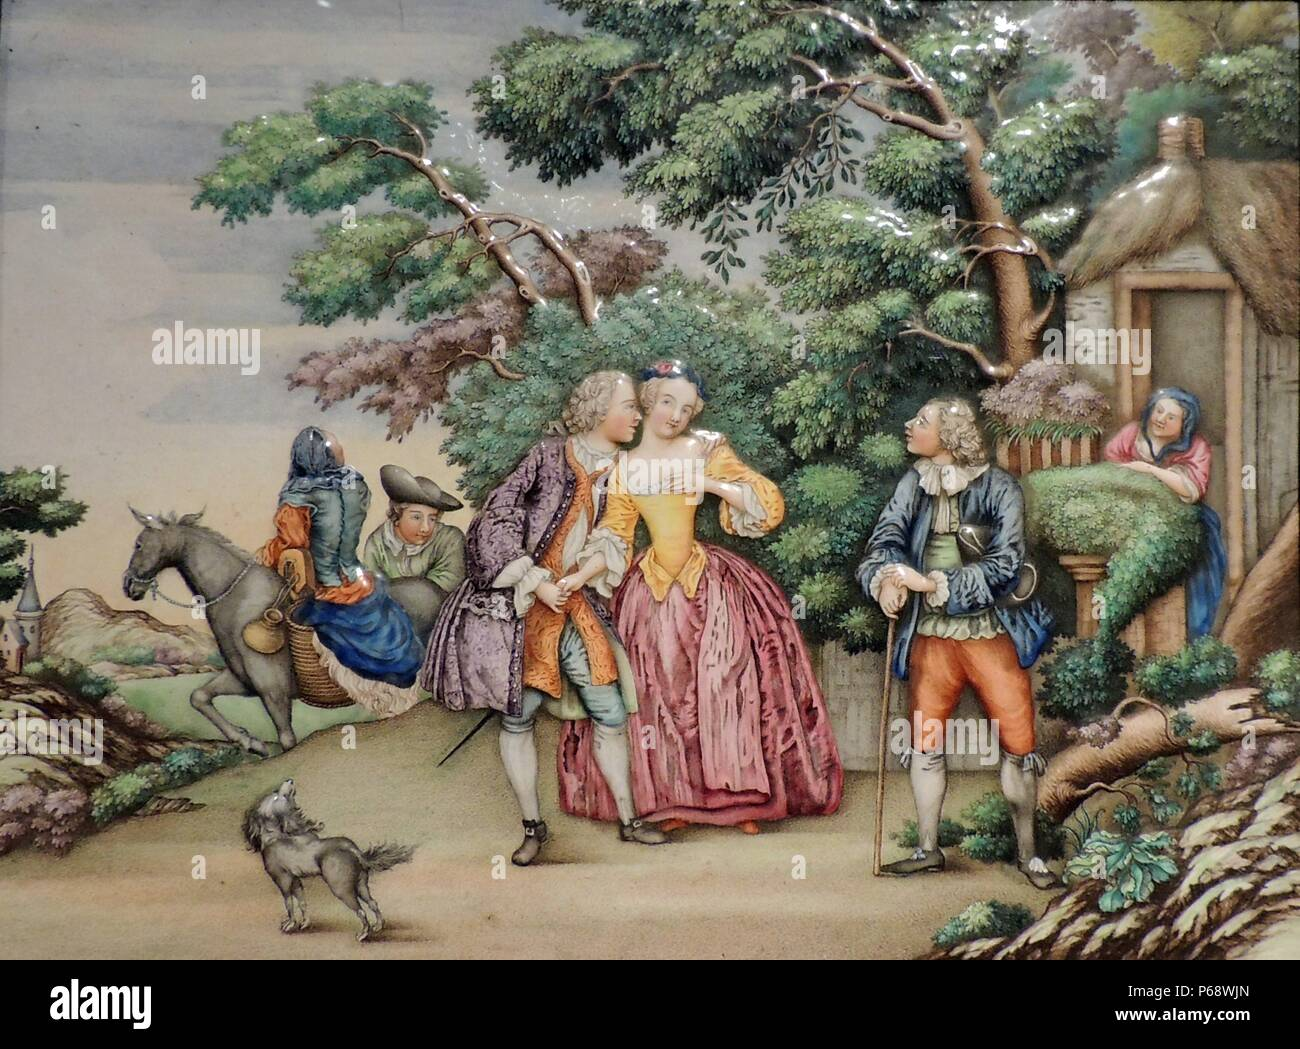 Plaque depicting scene with European people for a Dutch traders home in Canton made circa 1770-1775. Showing Dutch trade with China in 18th Century - Stock Image